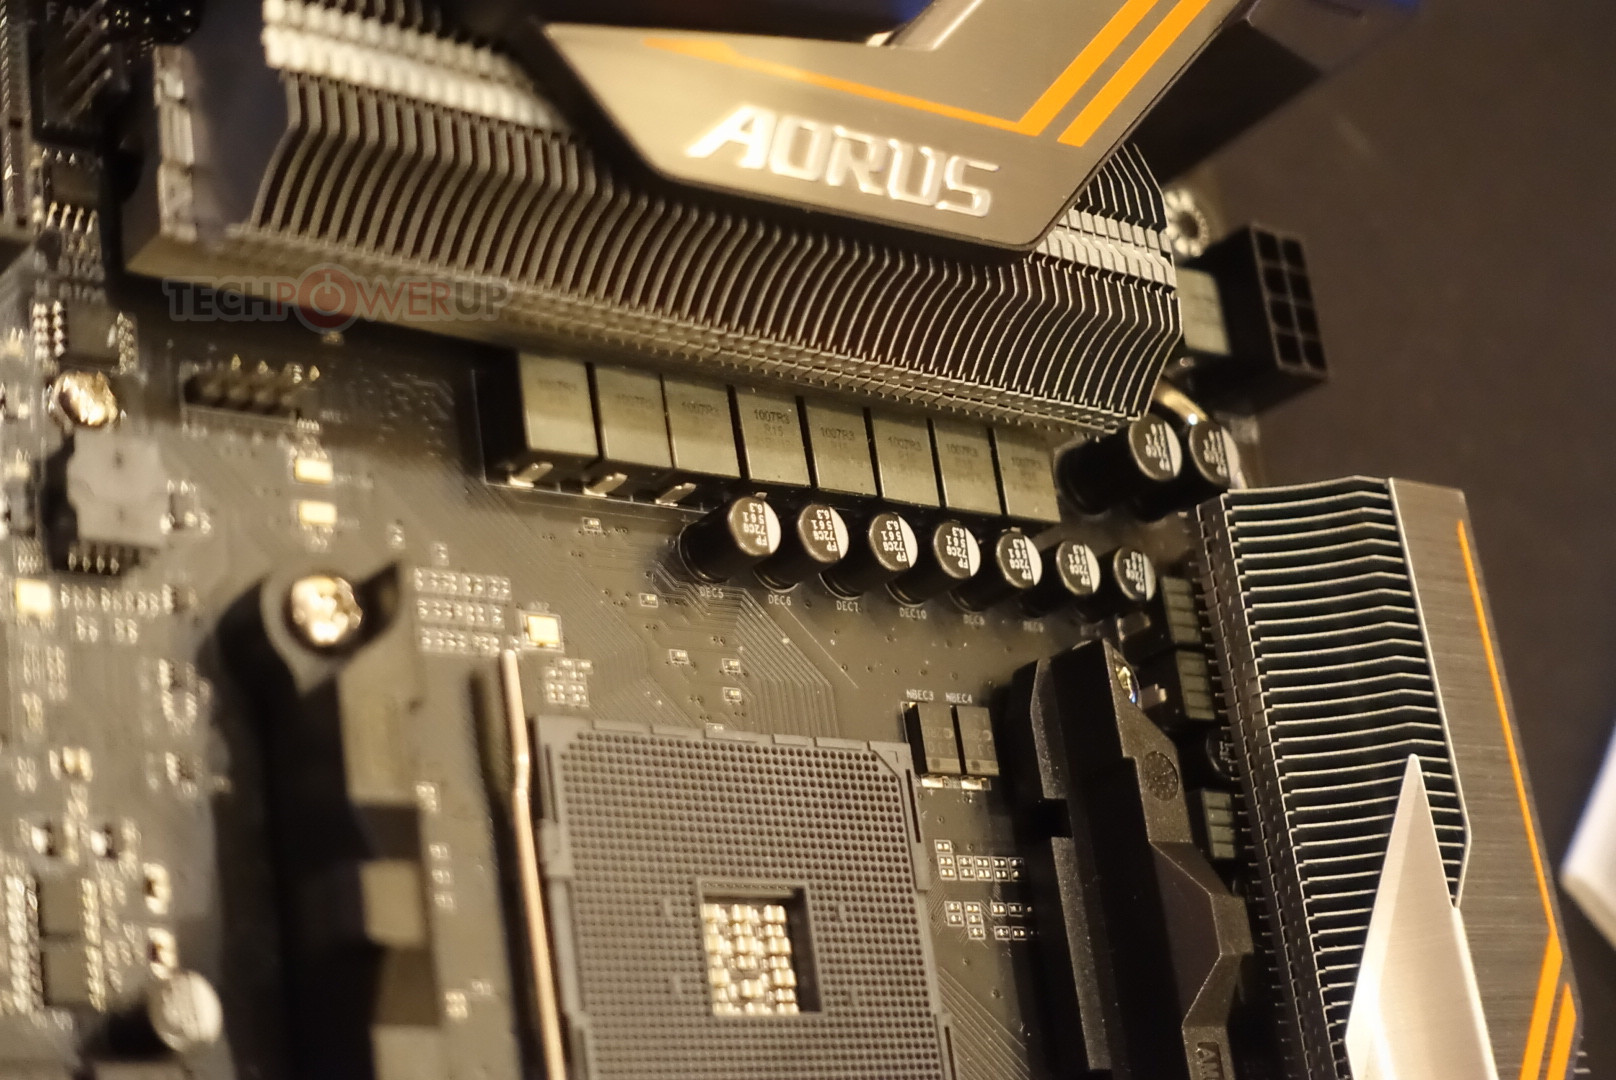 More Pictures of GIGABYTE Aorus X470 Gaming 7, Because Moar